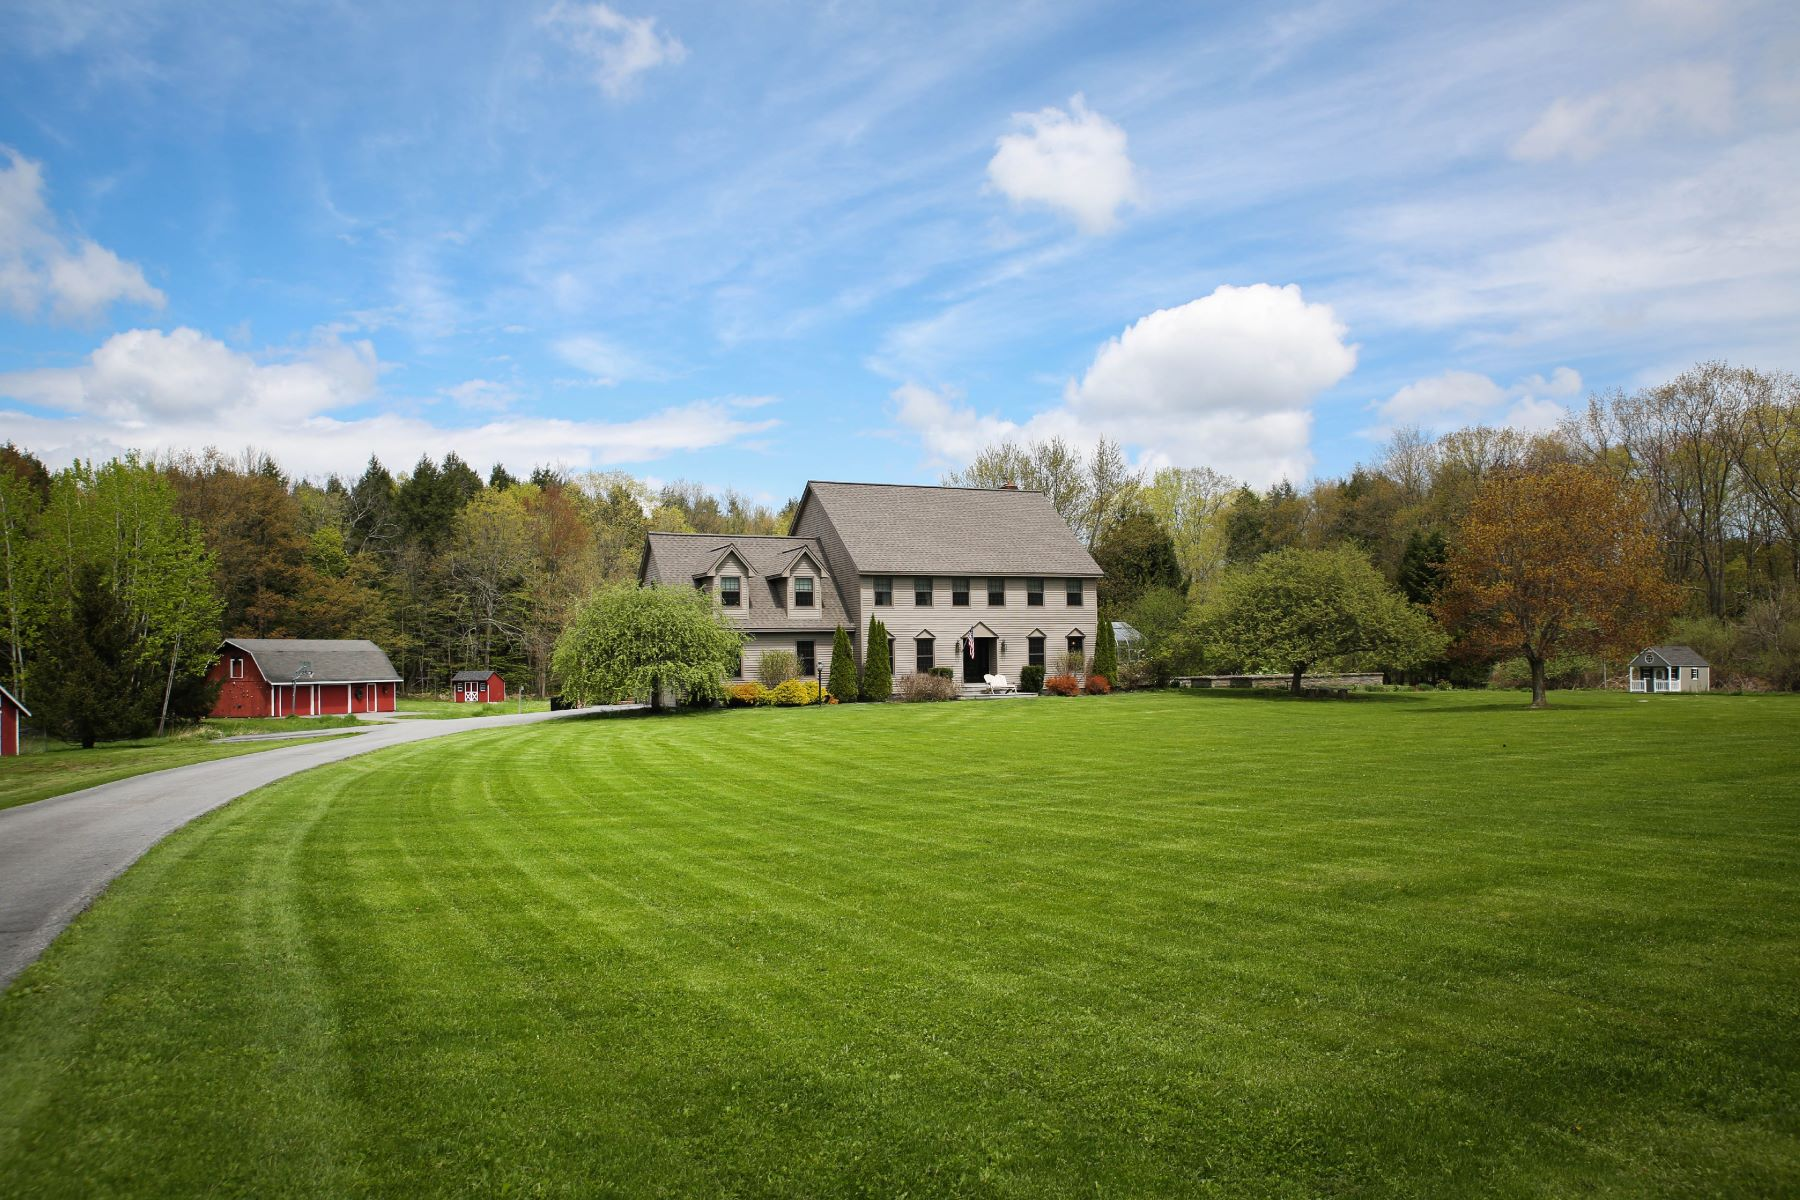 Farm / Ranch / Plantation for Sale at Gentleman's Estate 152 Charlton Rd. Ballston Spa, New York 12020 United States